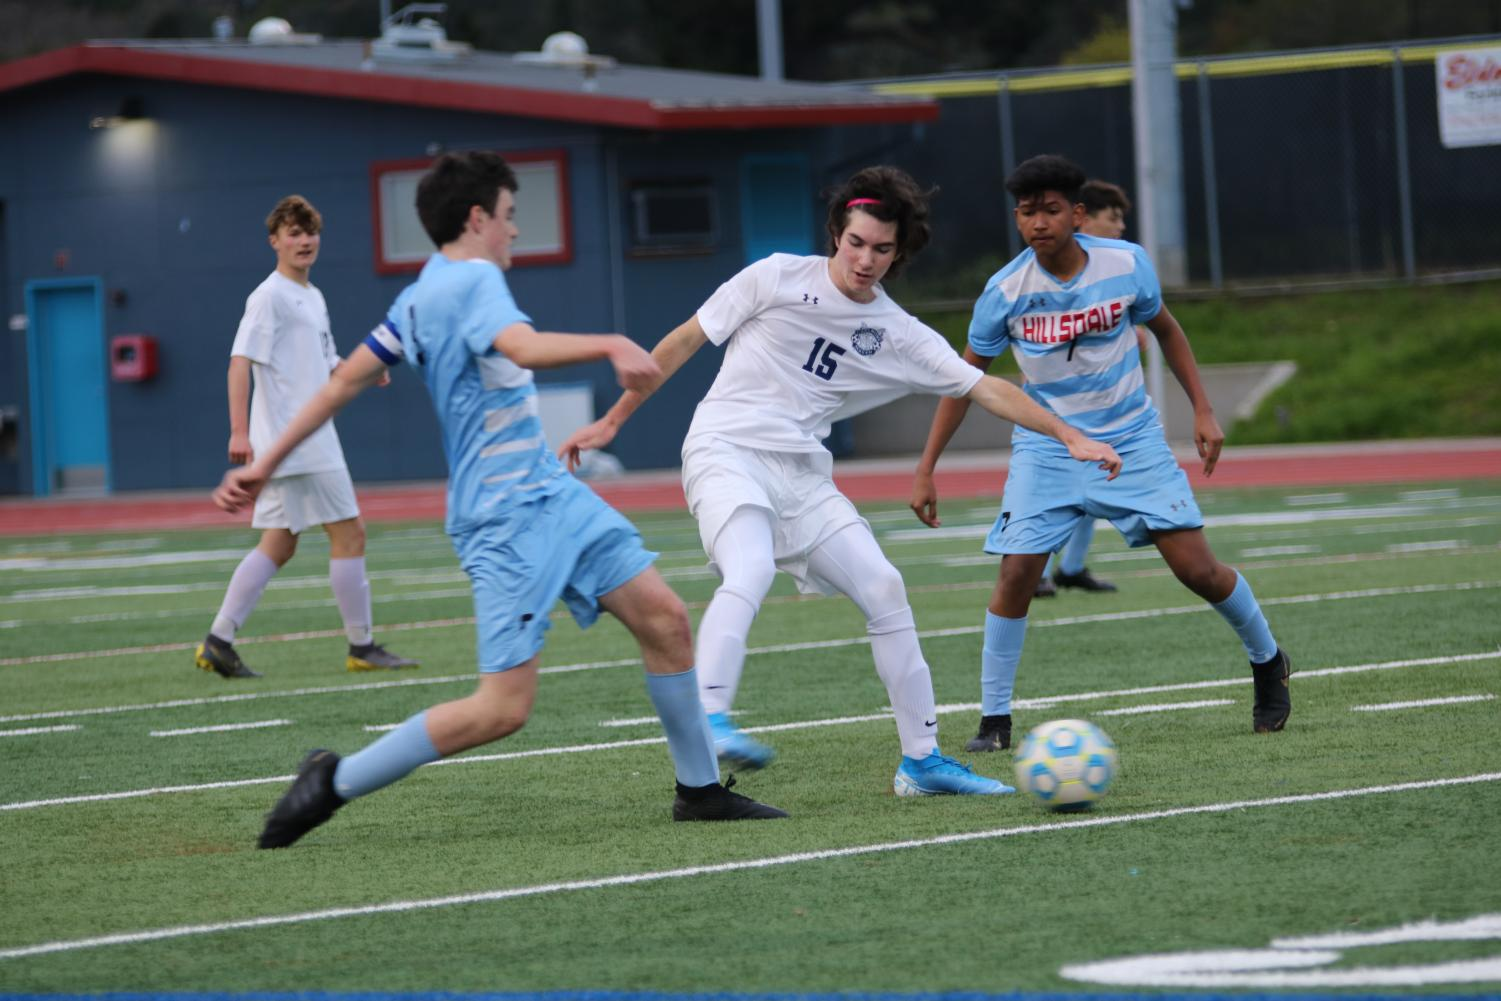 Hayden Pendleton, a sophomore, fends off Hillsdale players in order to gain control of the ball.